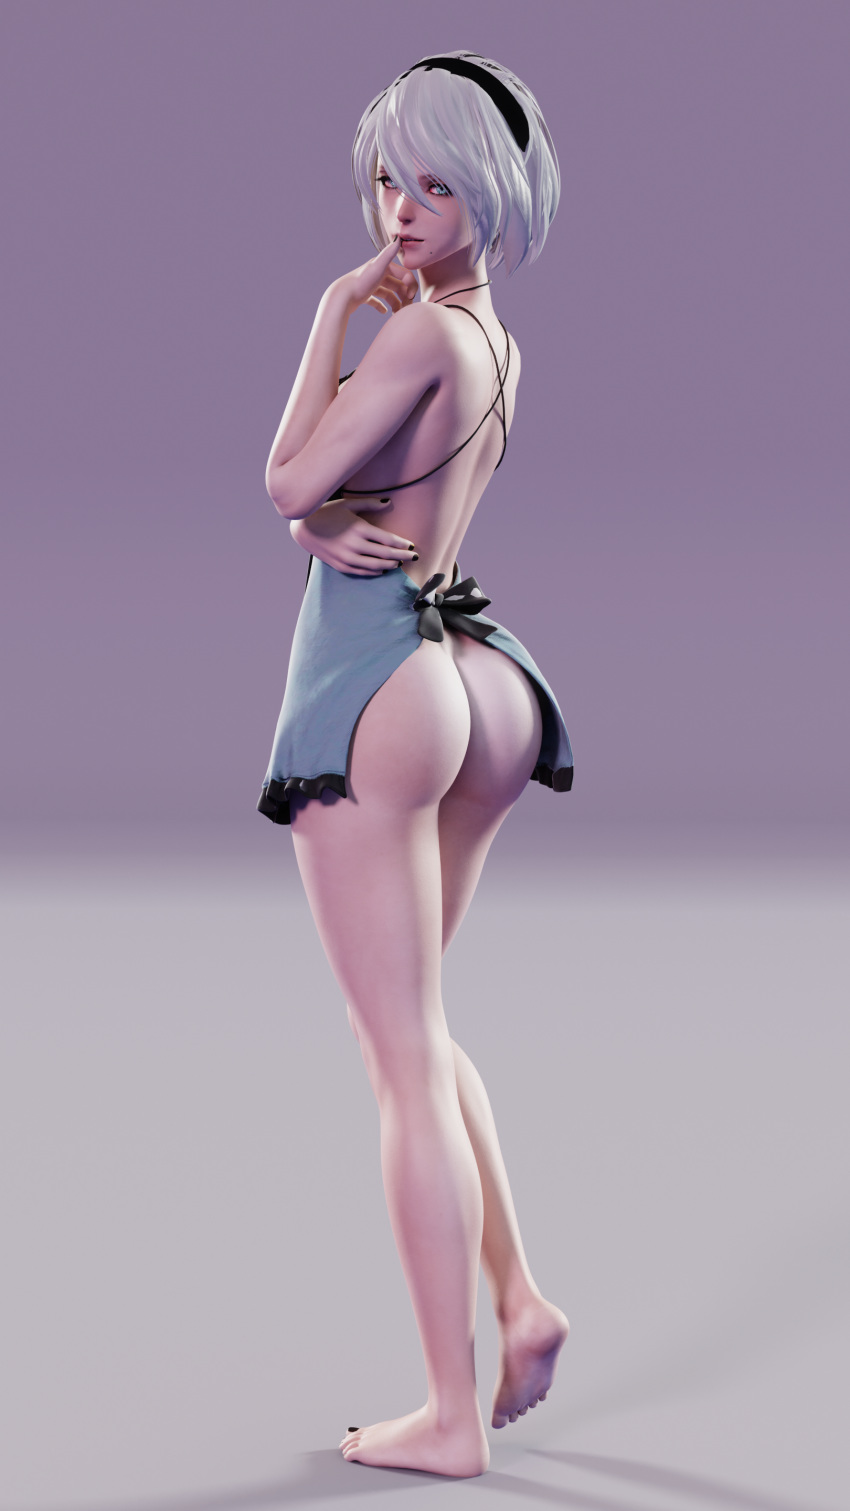 nier popola automata and devola Zelda dominates with ass and pussy